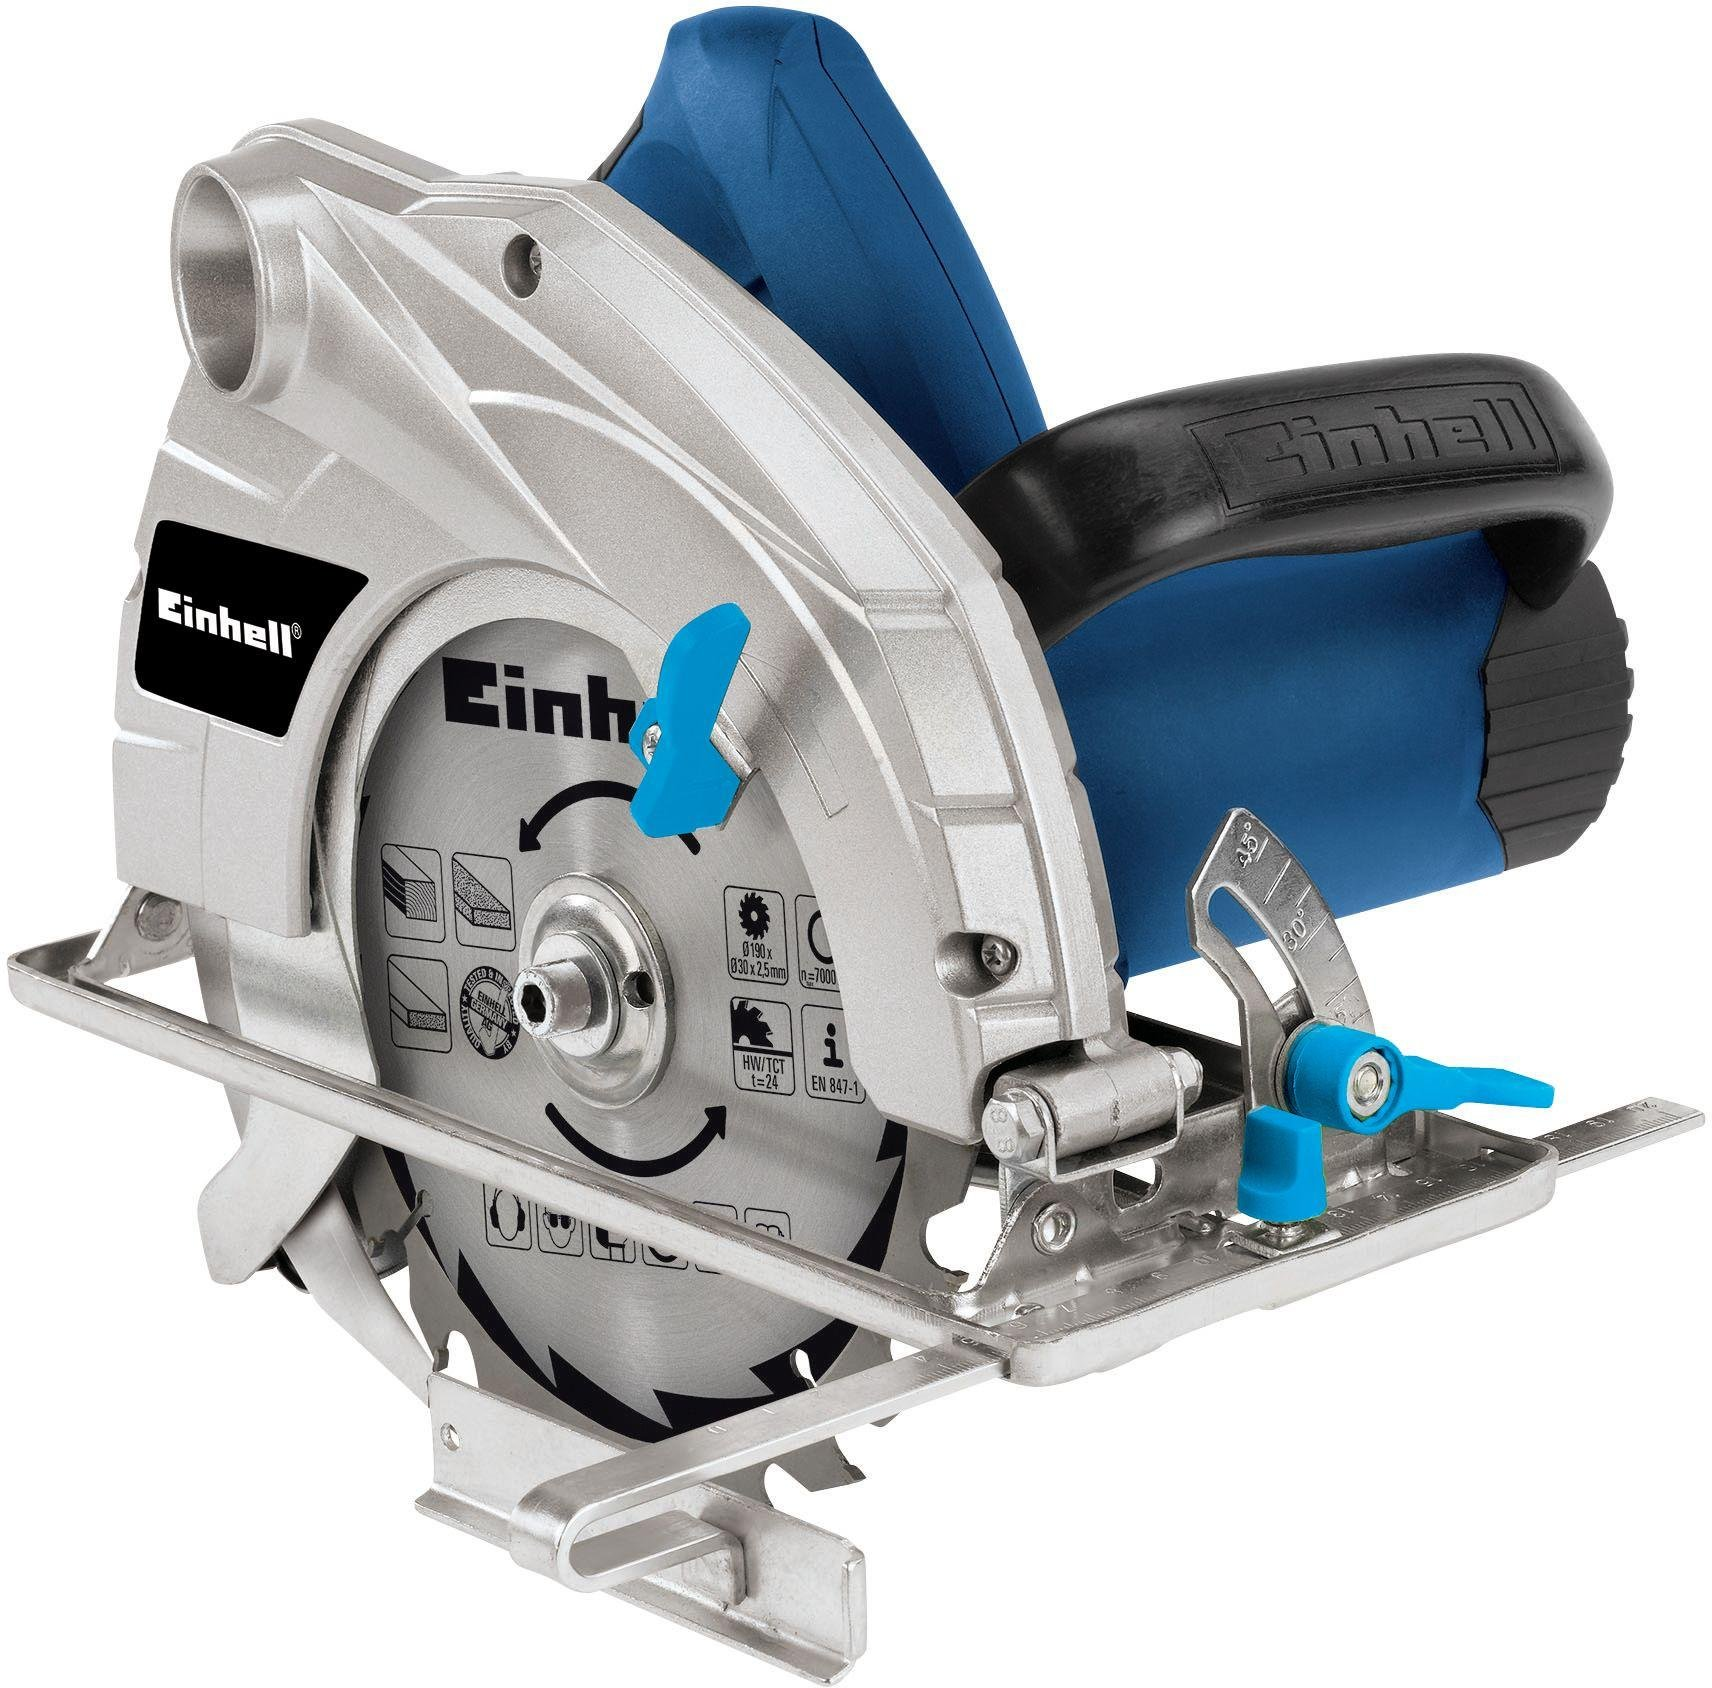 Image of 1,400W Circular Saw.